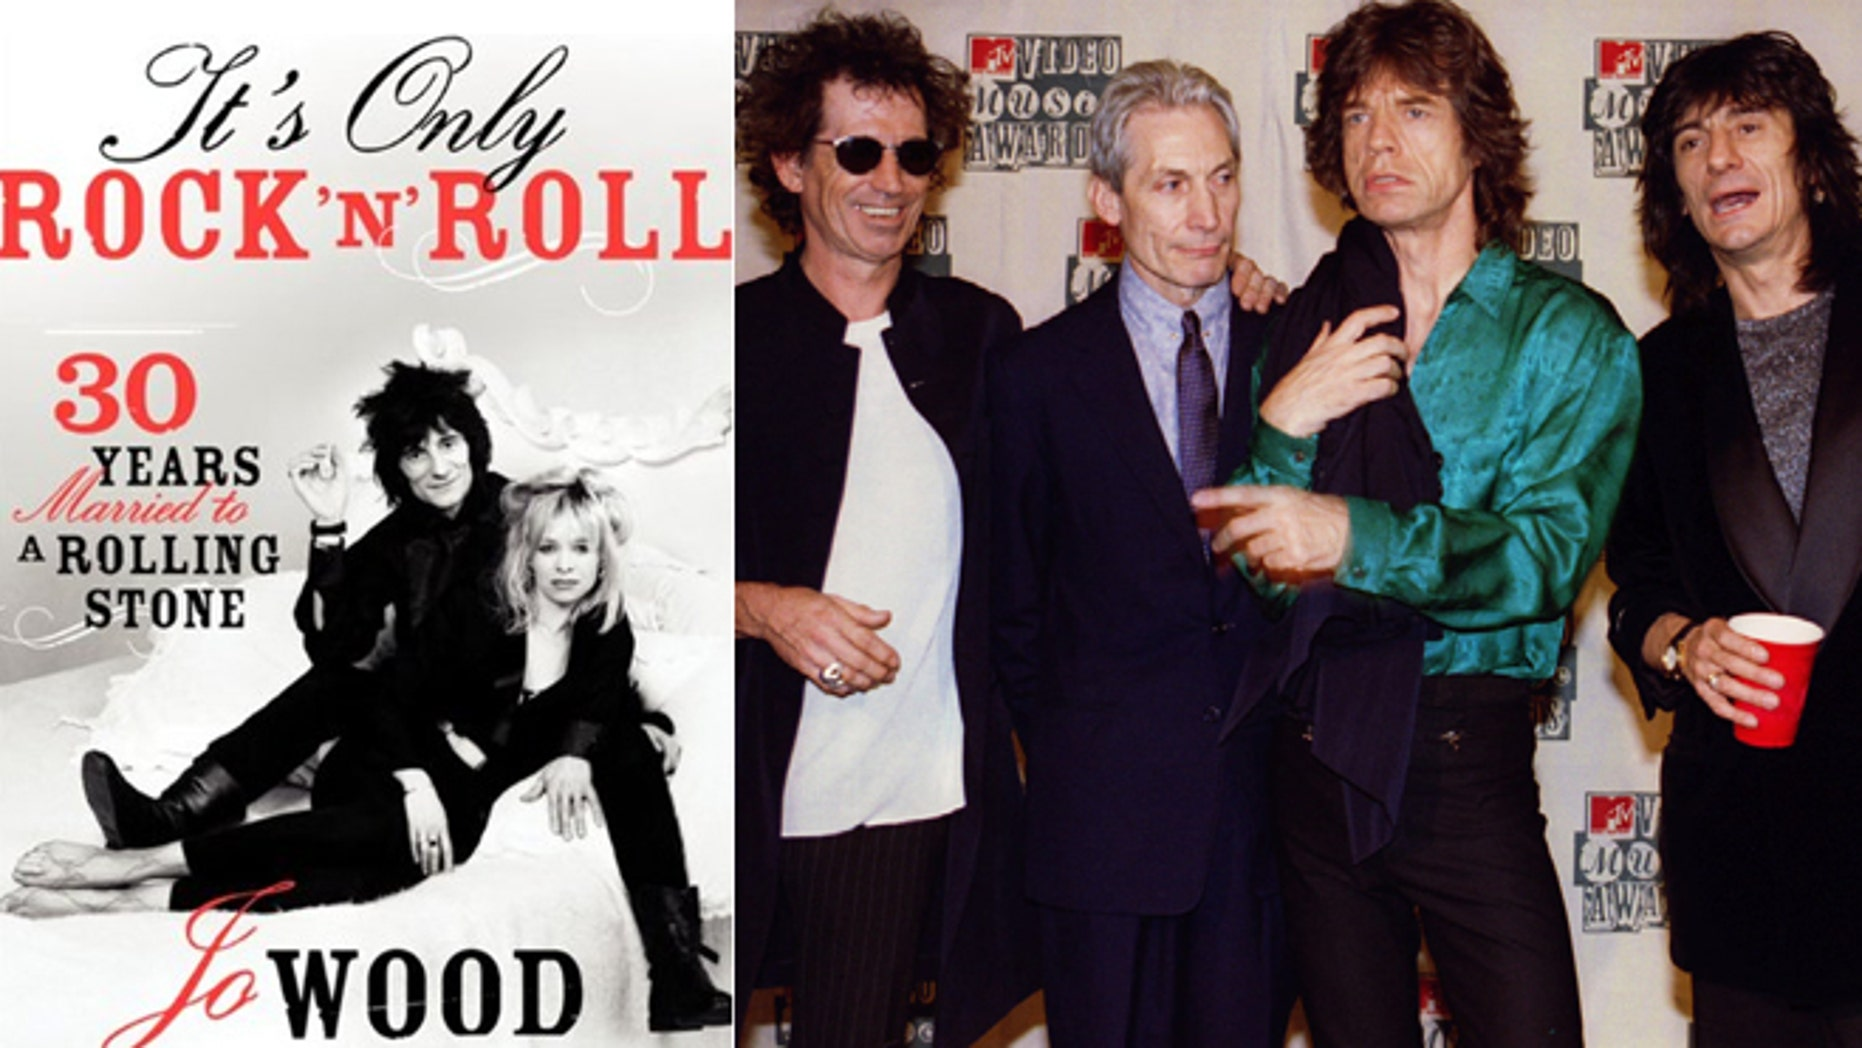 Jo Wood's book cover is seen, left, with the Rolling Stones, right.